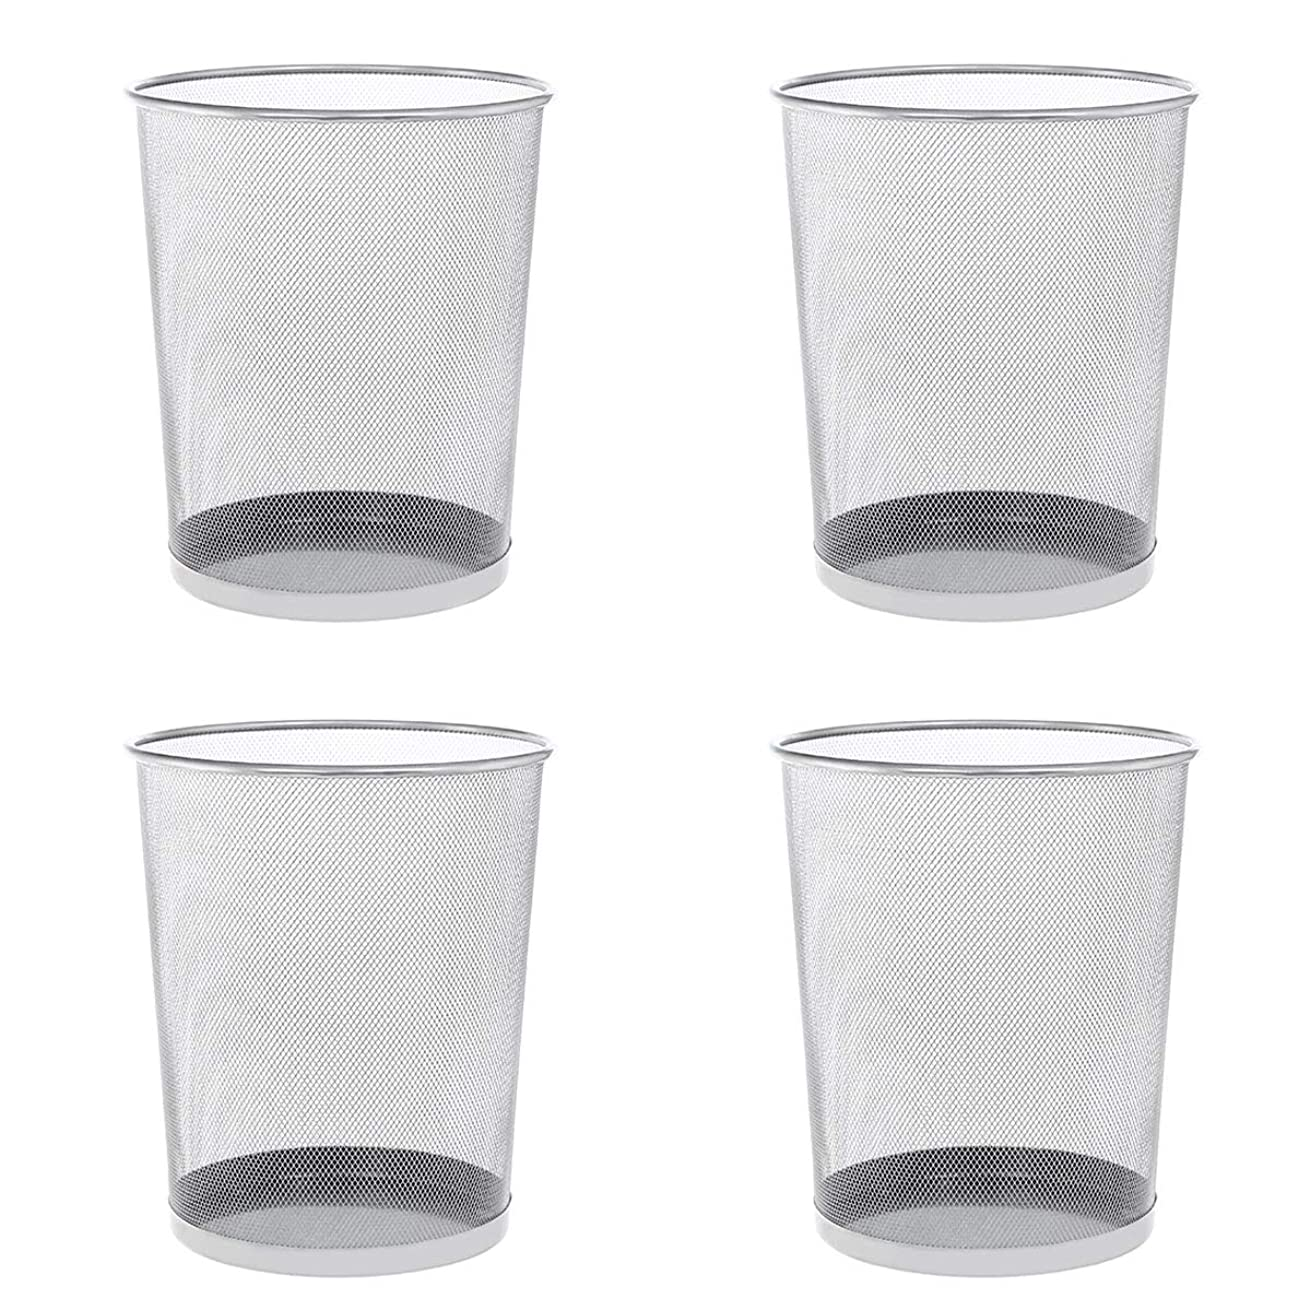 DeELF 4 Pack Mesh Wastebasket Trash Can 4.5 Gallon Round Shape for Creating Home Office Fashion and Uniqueness, Sliver